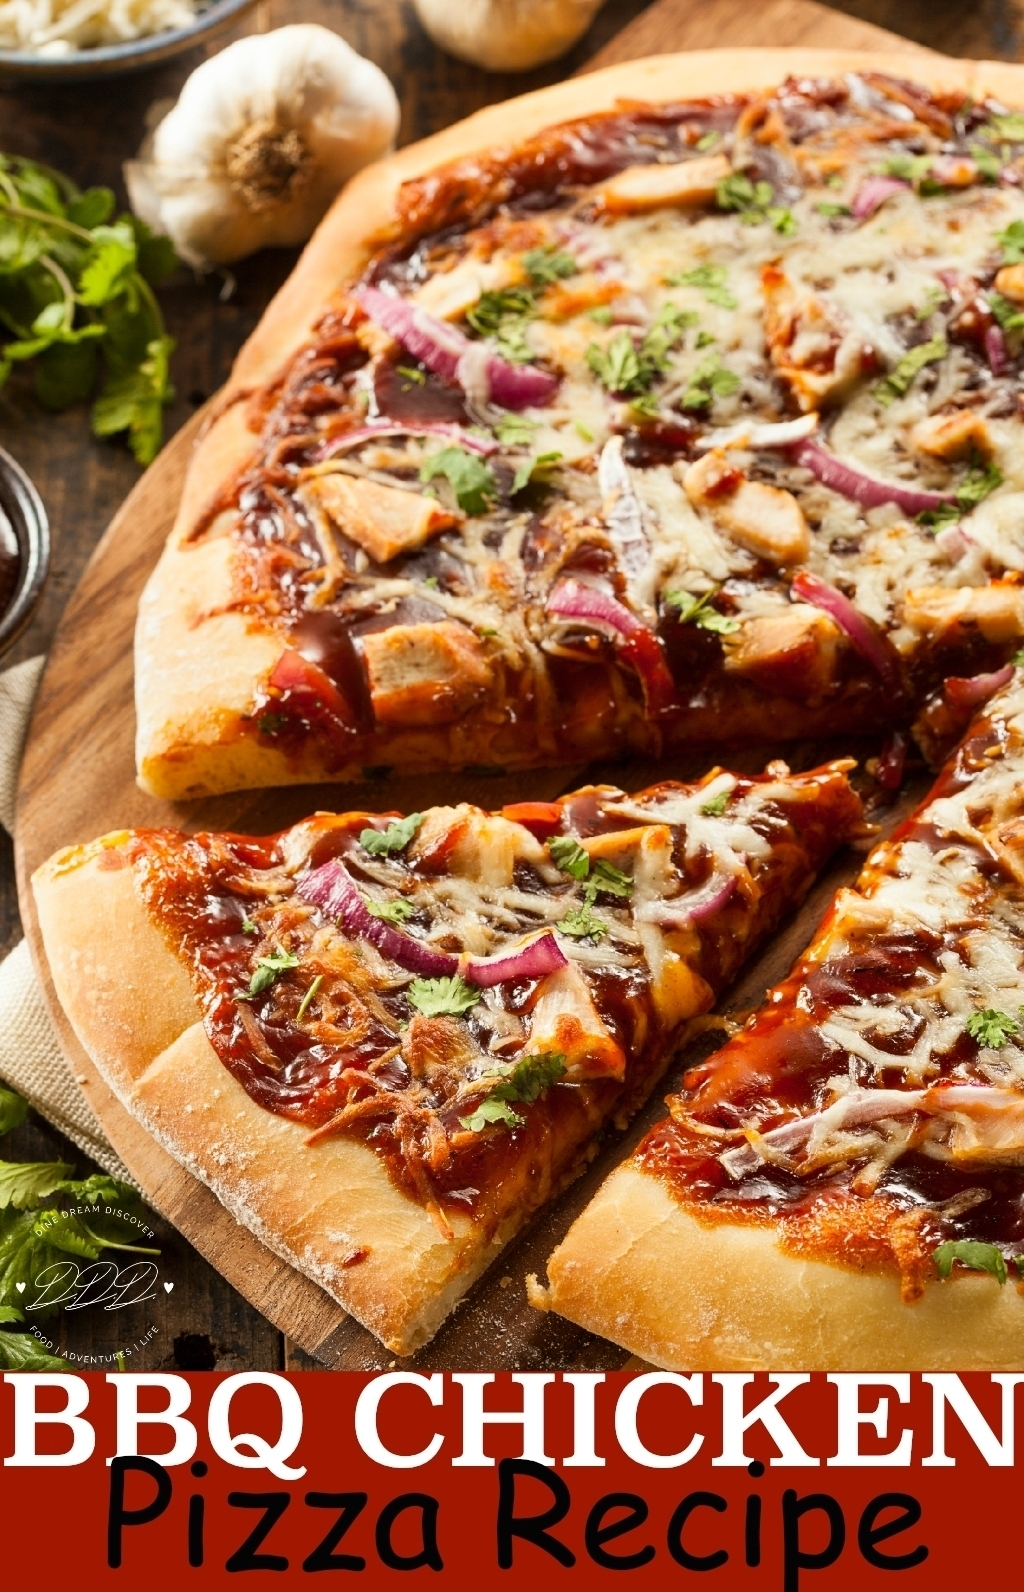 A delicious and easy BBQ Chicken Pizza recipe that can also be made with a cauliflower pizza crust and rotisserie chicken along with your favorite Memphis BBQ sauce.